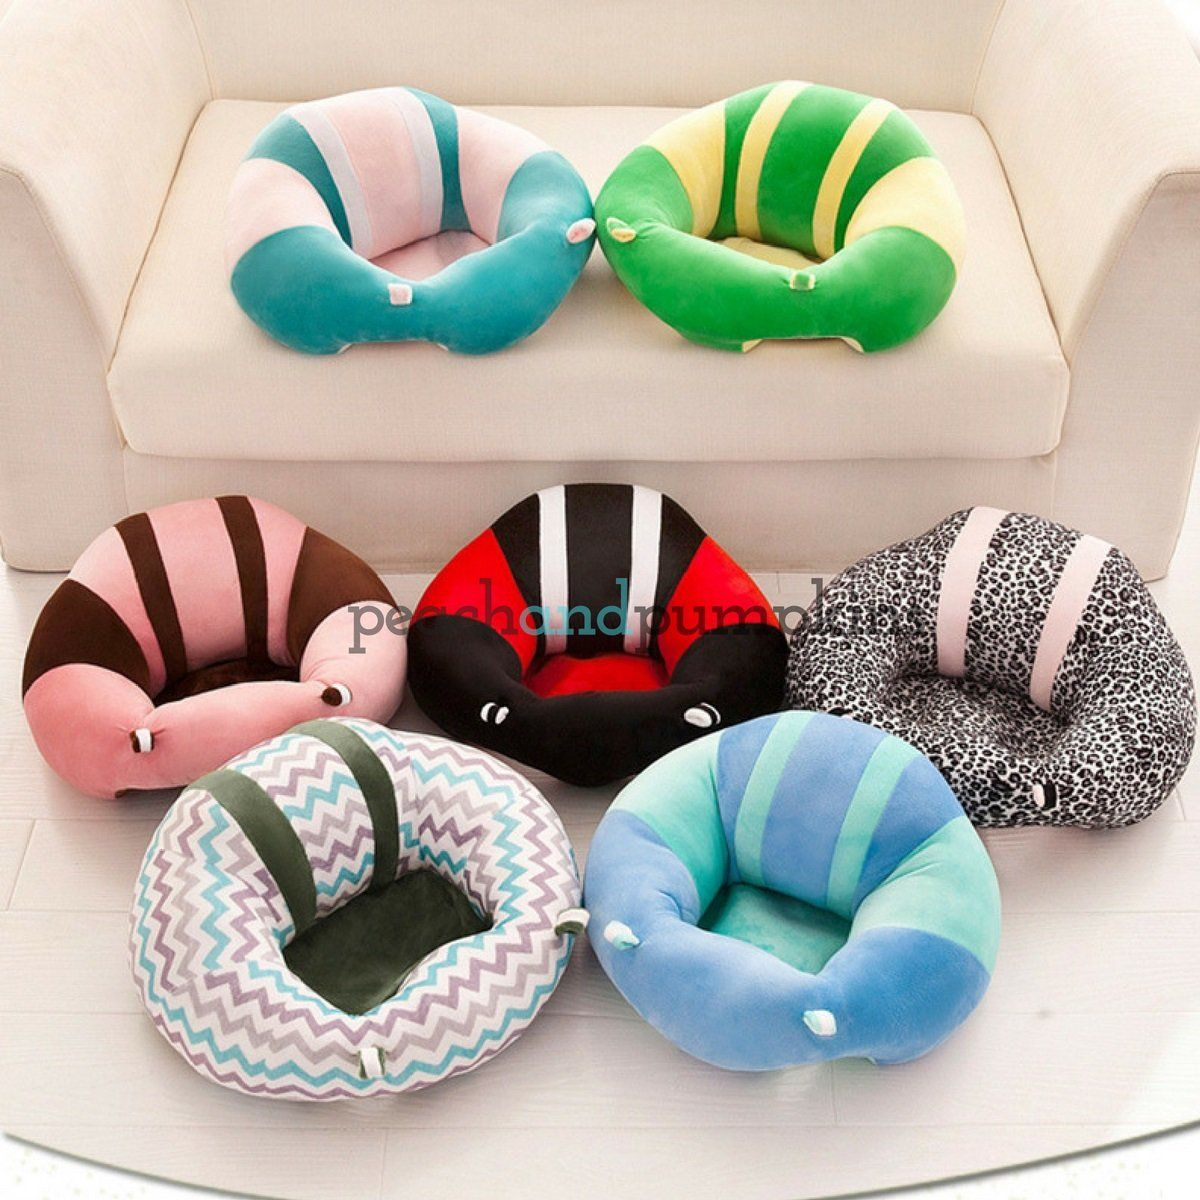 Latest Collection Of Infant Baby Support Seat Soft Chair Cushion Plush Cotton Orange Pink Elephant Durable Service Other